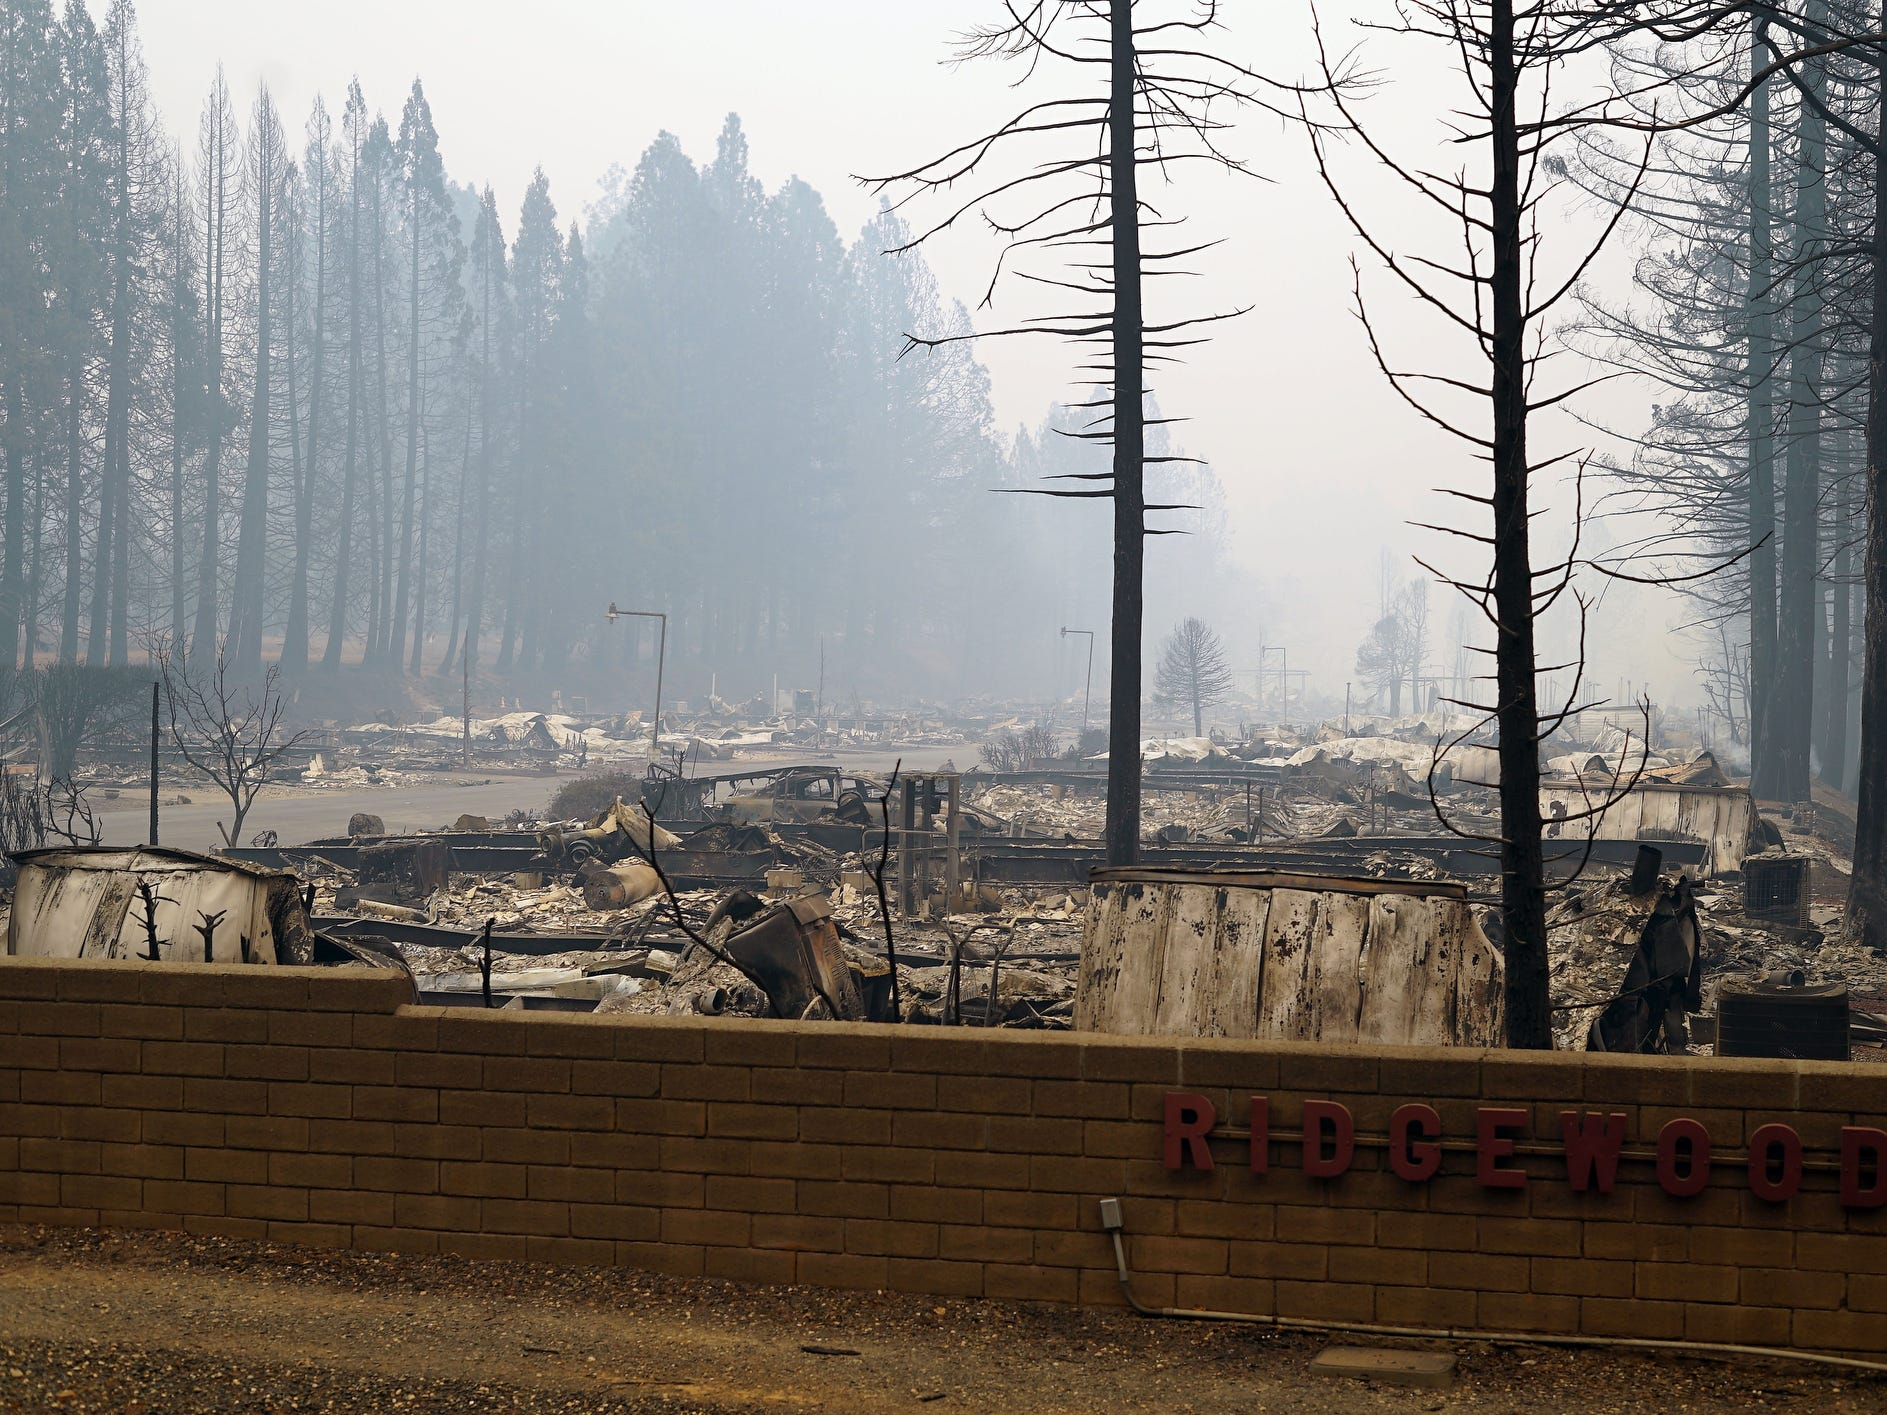 Smoke hangs over the utterly destroyed Ridgewood mobile home park in Paradise, Calif., following the Camp Fire devastation.